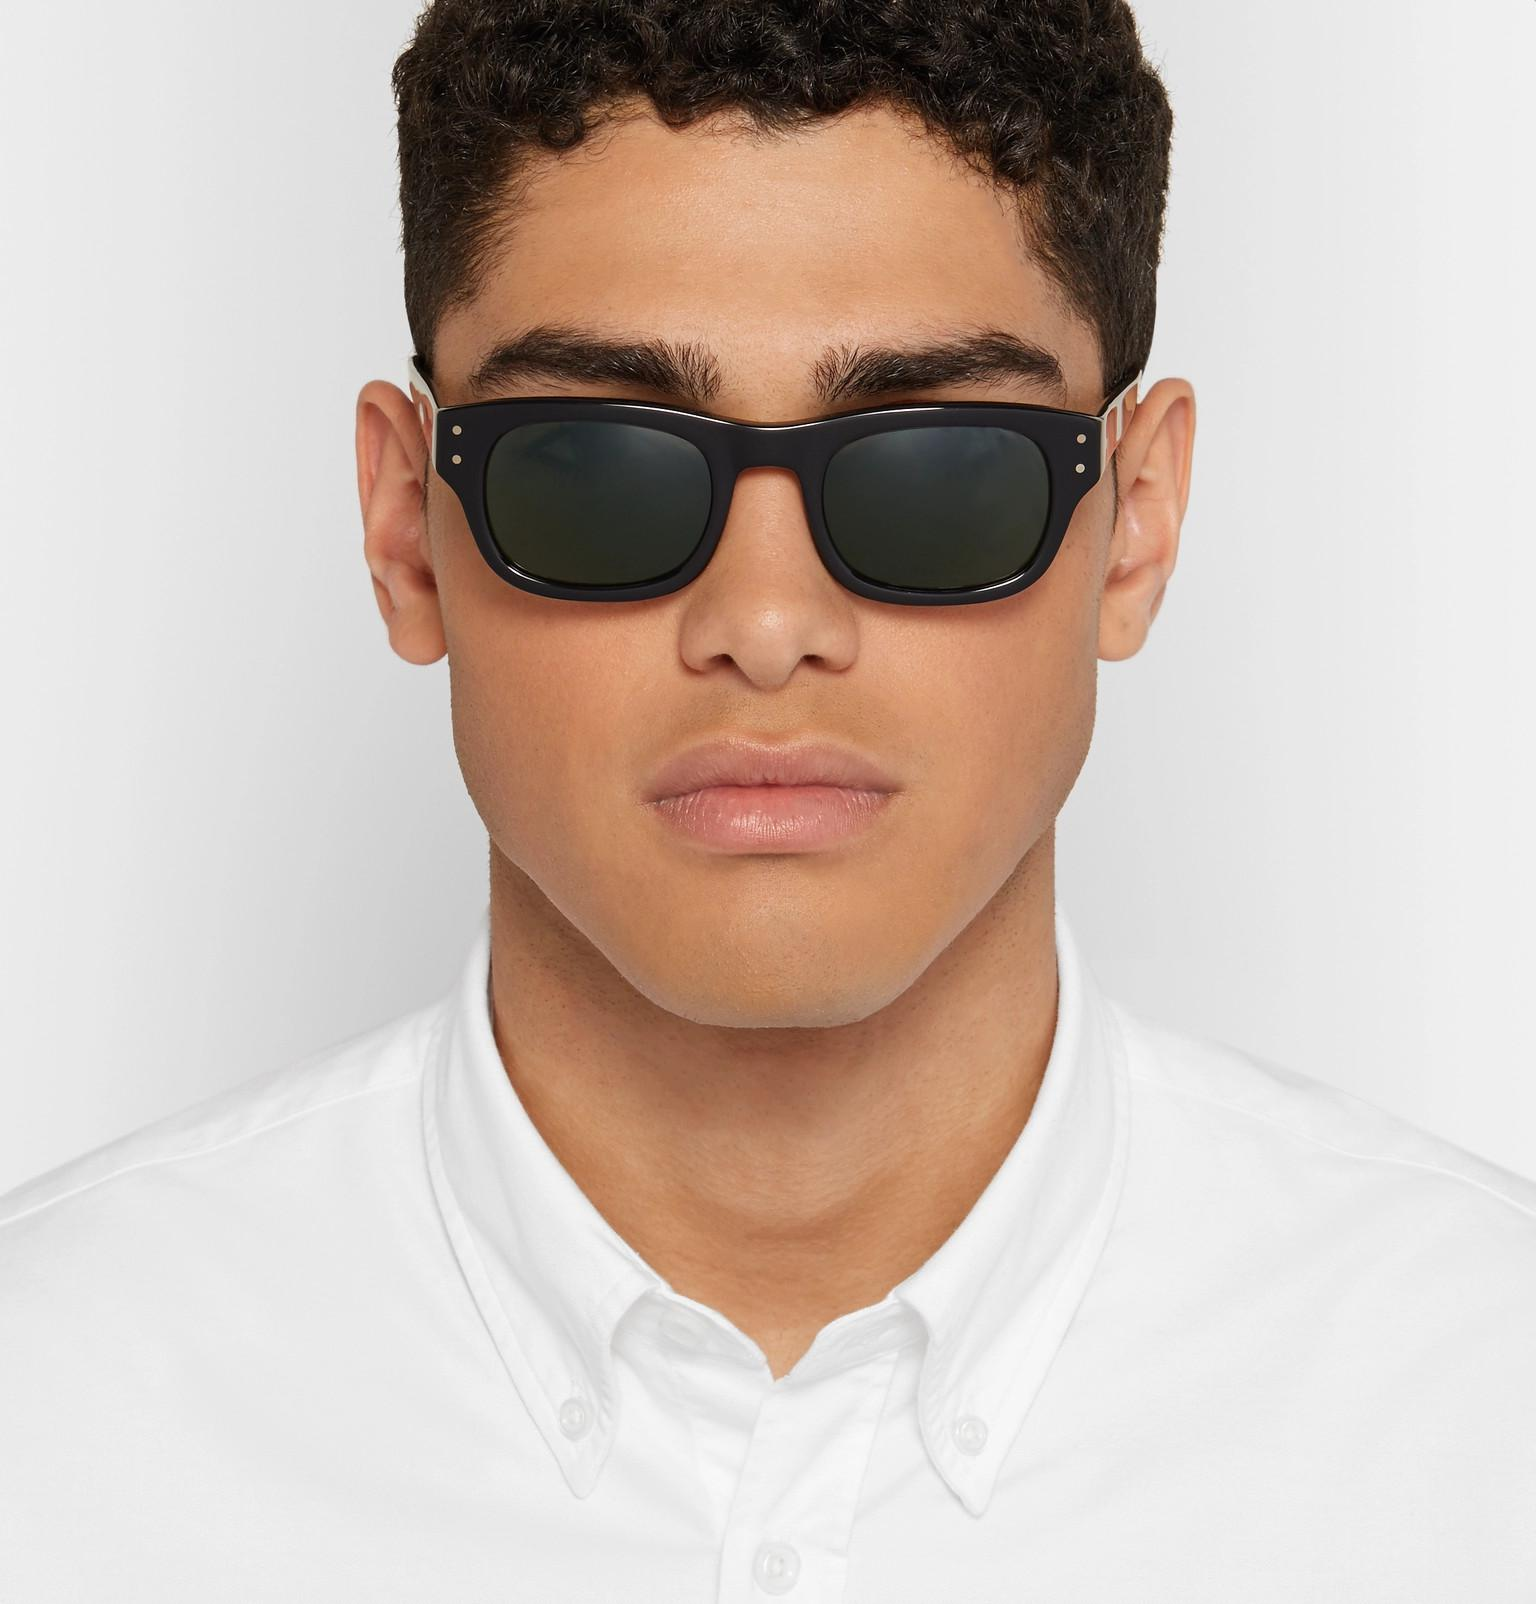 ab8be1f4b045 Moscot Nebb Square-frame Acetate Sunglasses in Black for Men - Lyst